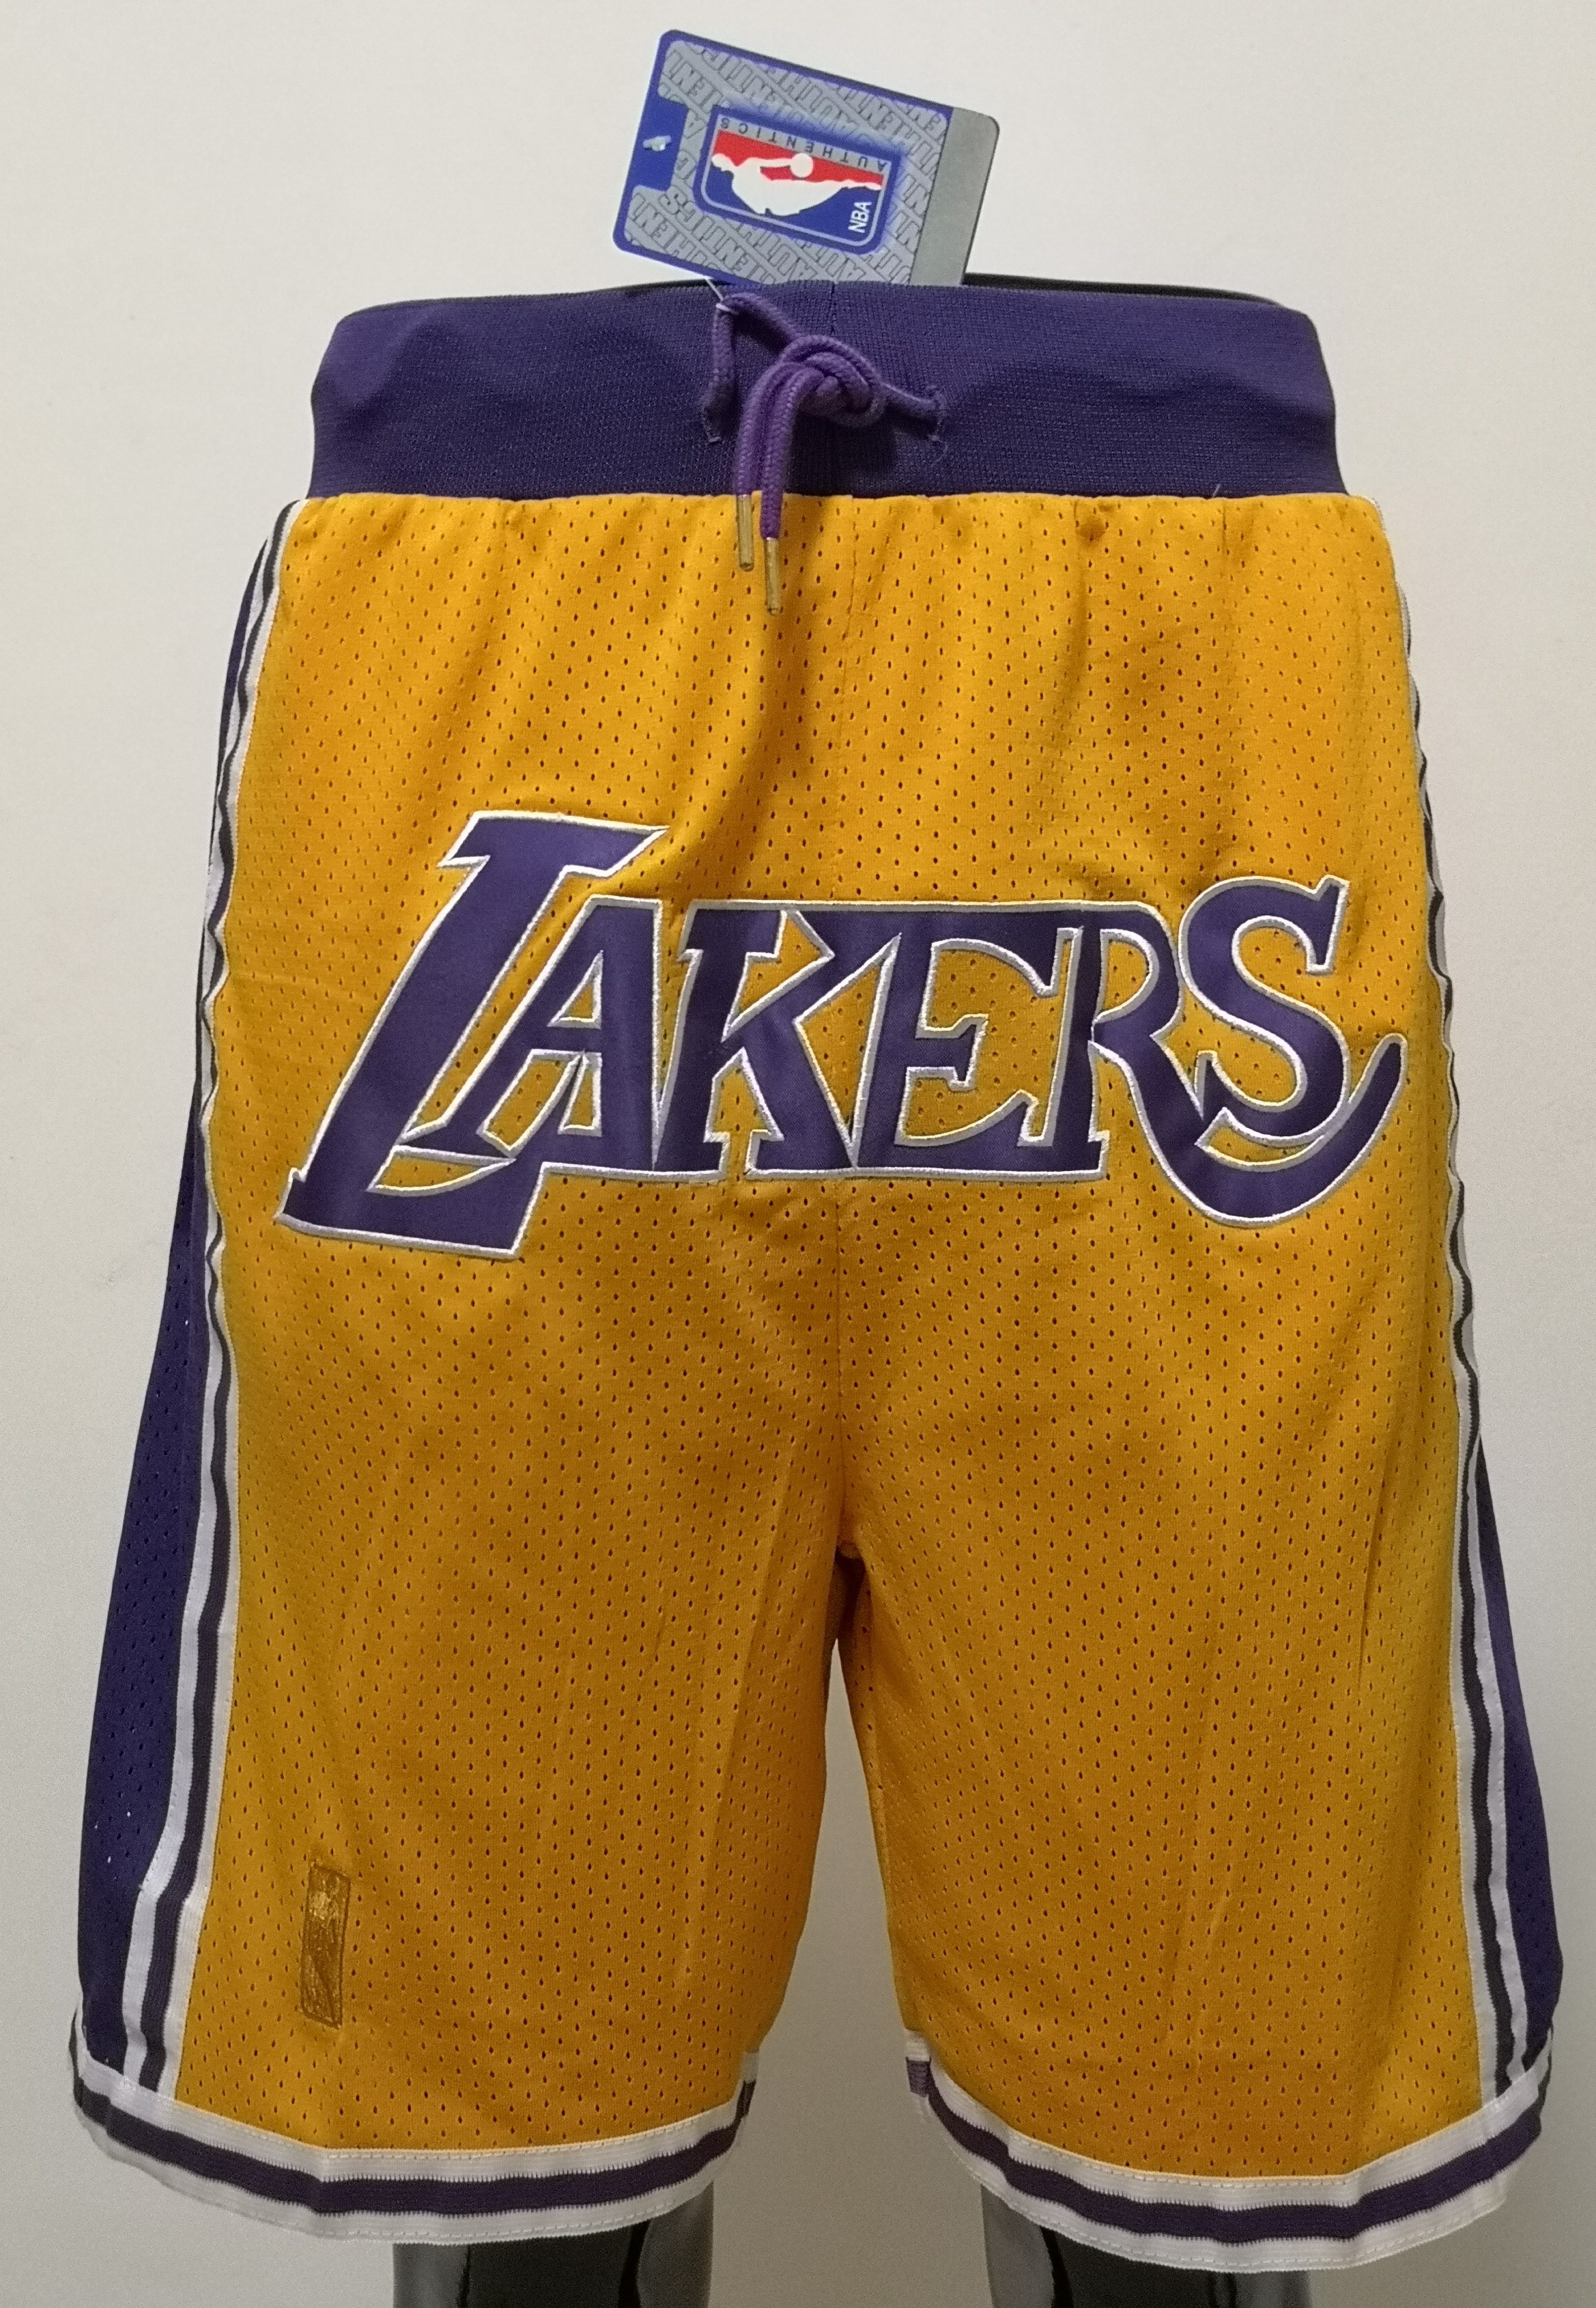 2020 Men NBA Los Angeles Lakers 01 shorts